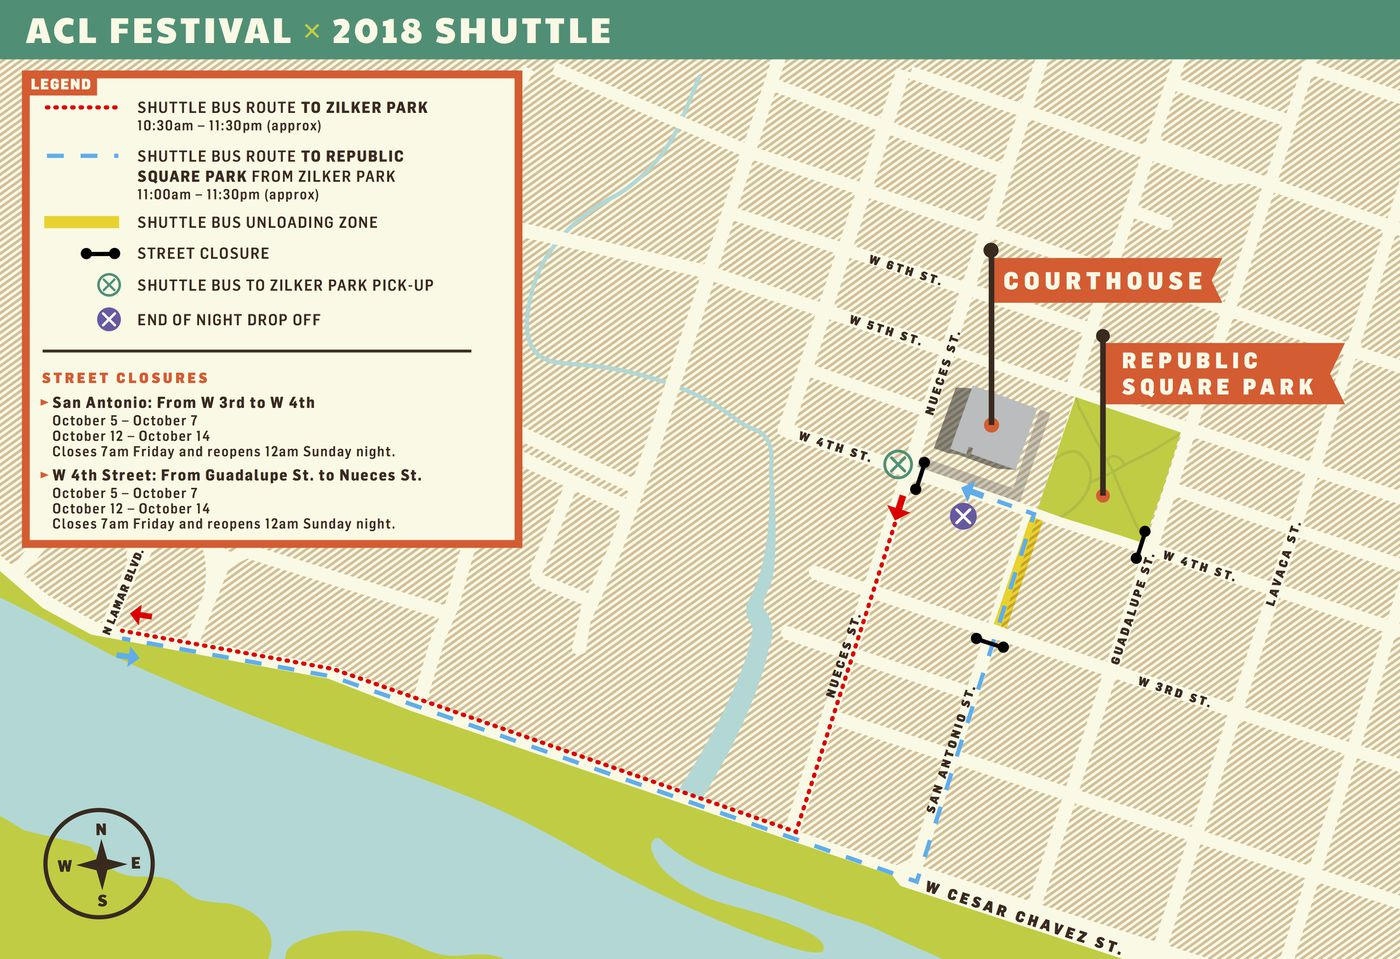 ACL Fest 2018: How to get there (or avoid it) - Curbed Austin Zilker Park Map on austin map, lakeline mall map, san marcos map, mckinney falls state park map, fair park map, the pageant map, edwards aquifer map, circuit of the americas map, camp mabry map, the national map, stadium map, jj pickle research center map, iroquois amphitheater map, madison square garden map, highland mall map, dell diamond map, wisconsin state parks map, piedmont park map, red rocks amphitheatre map,